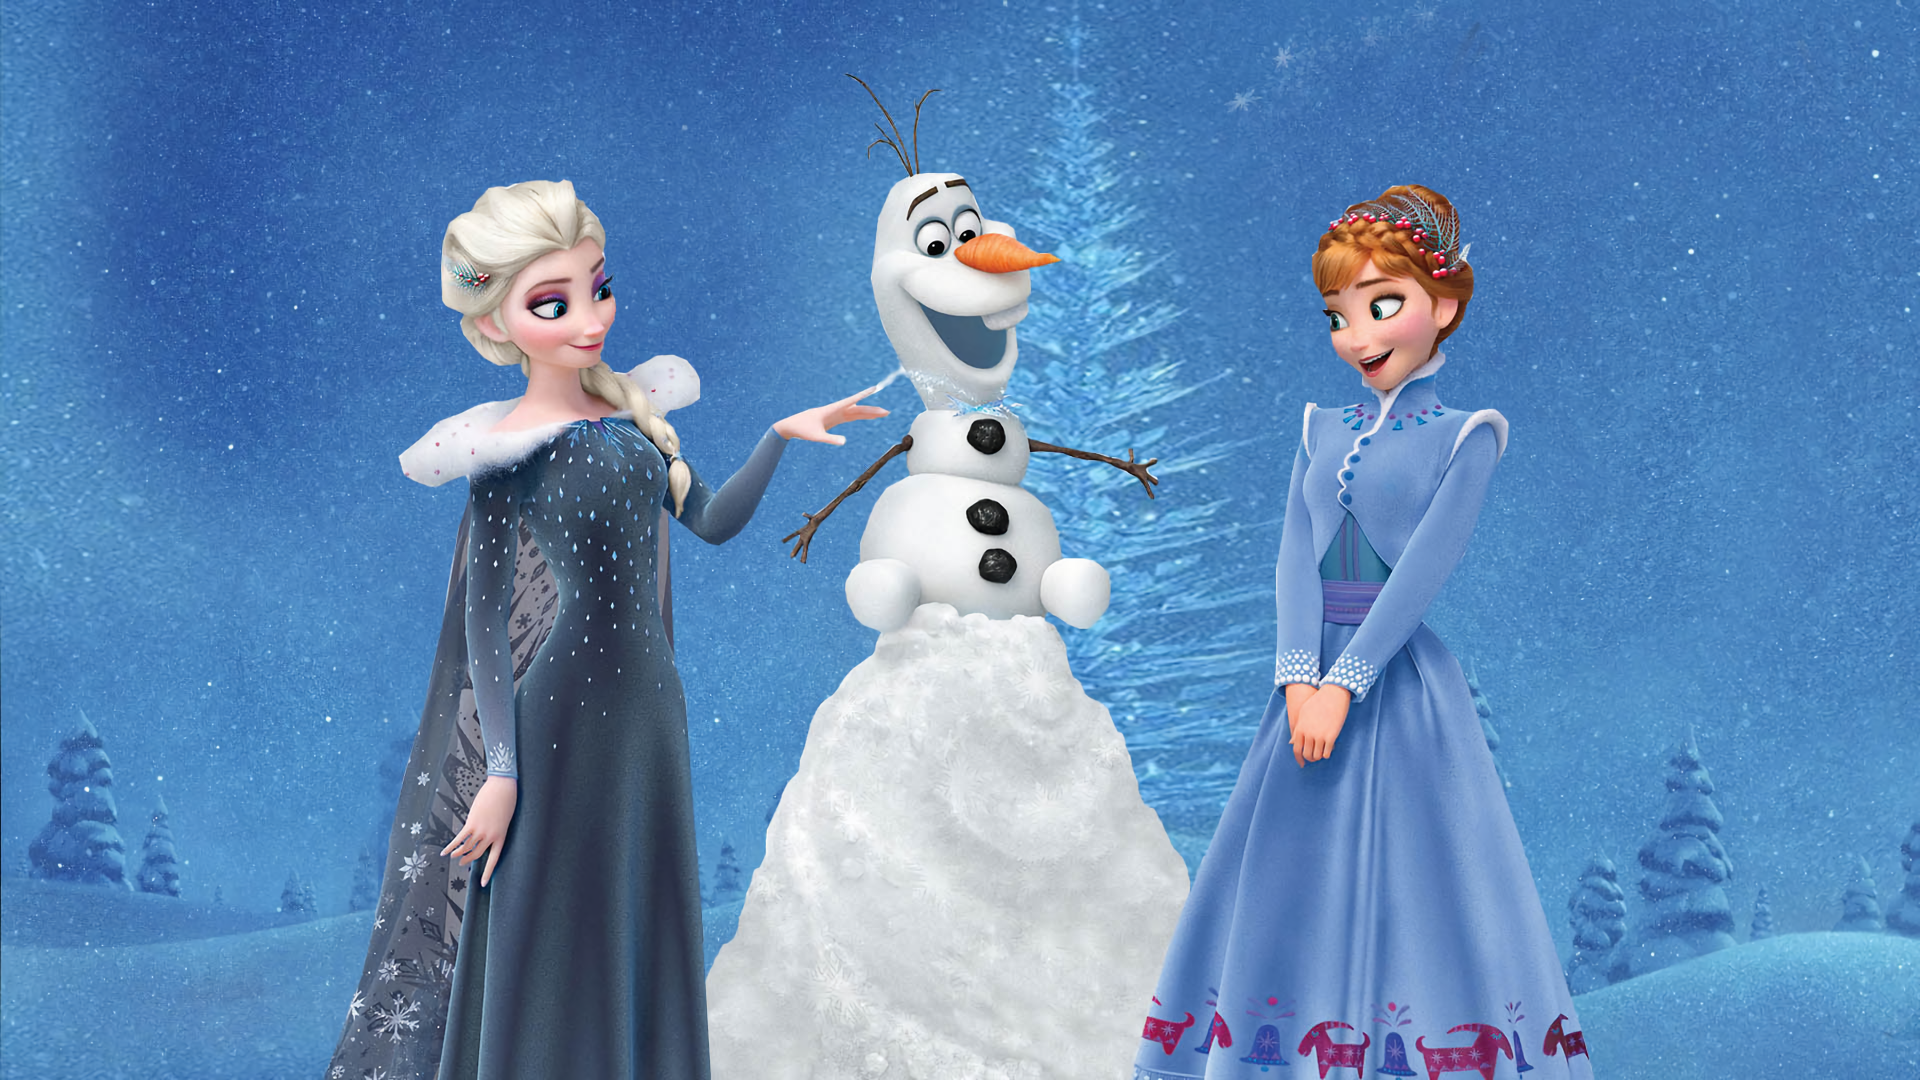 6 Olaf S Frozen Adventure Hd Wallpapers Background Images